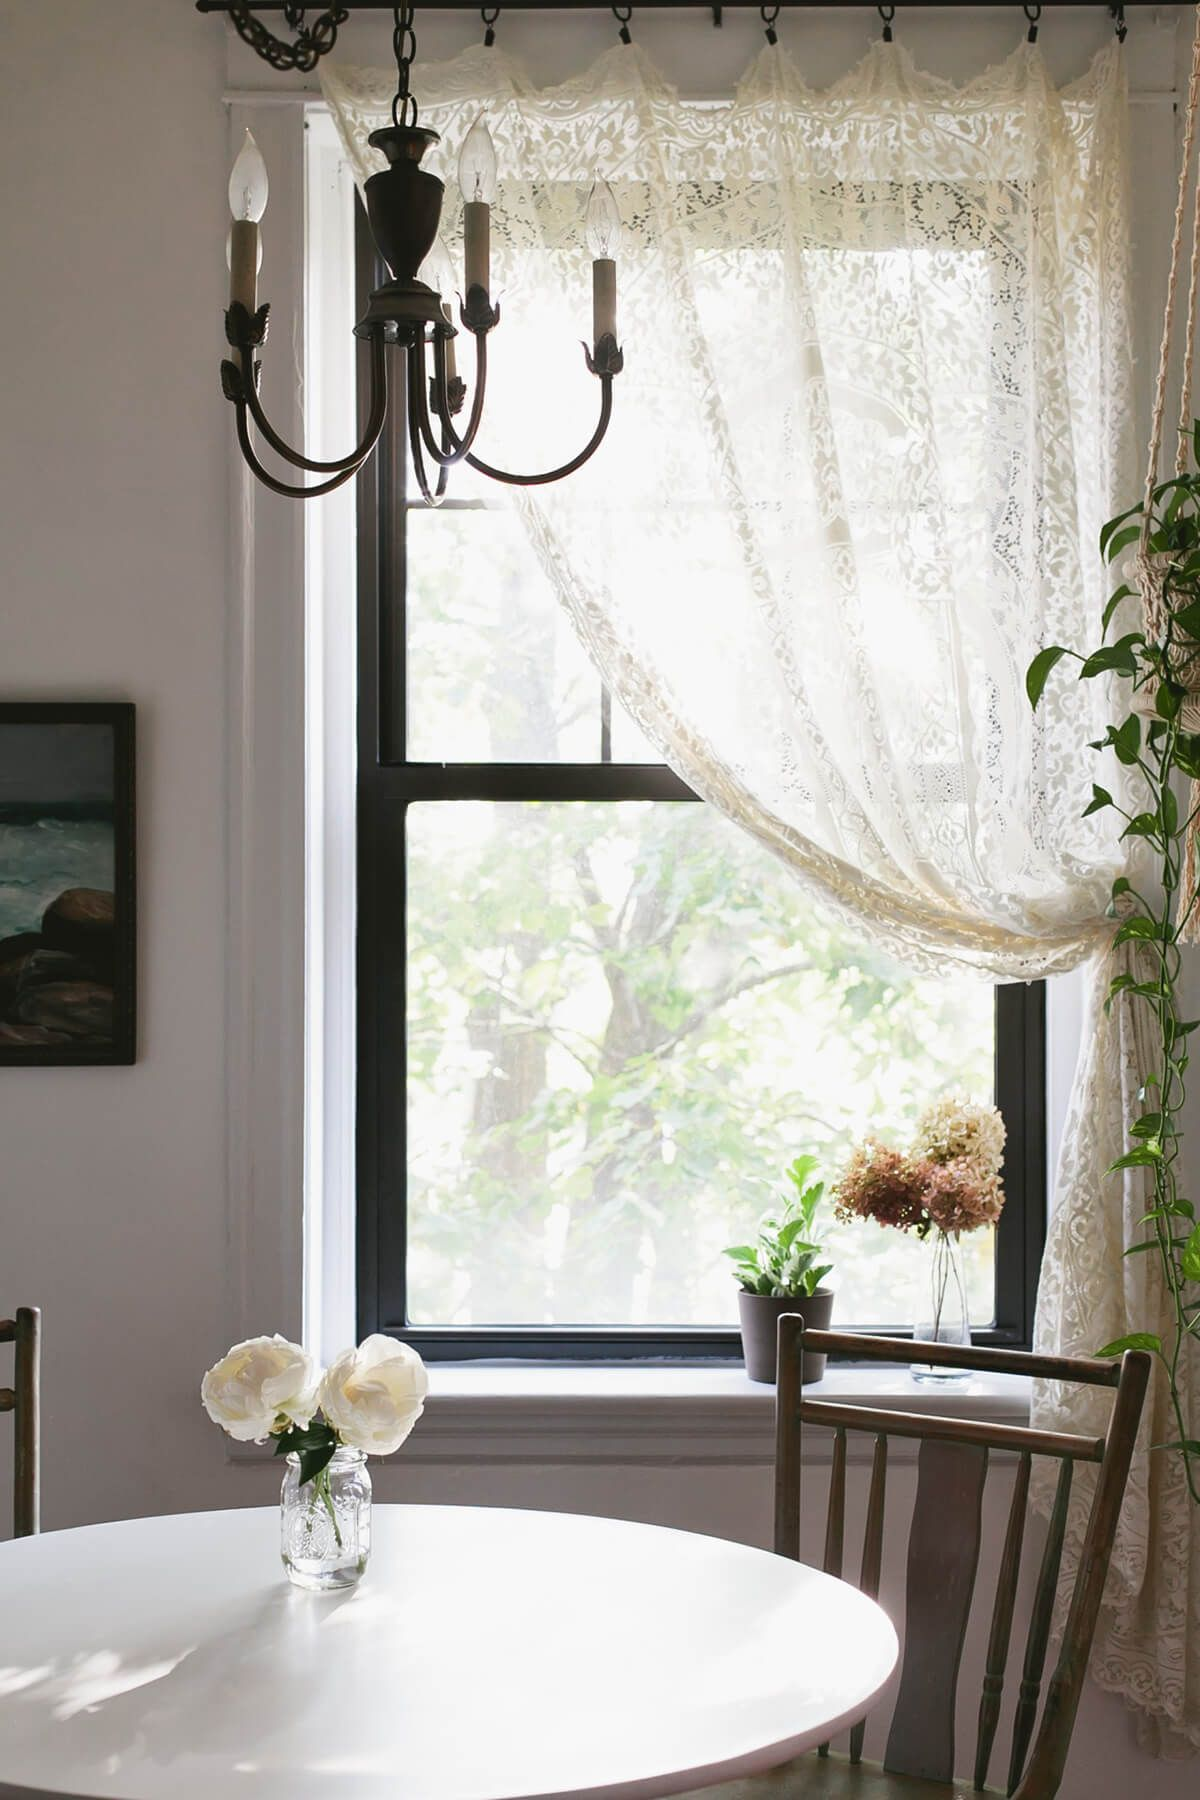 26 Farmhouse Window Treatment Ideas To Bring Old Fashioned Charm To Your Home Farmhouse Window Treatments Curtains Living Room Farmhouse Curtains